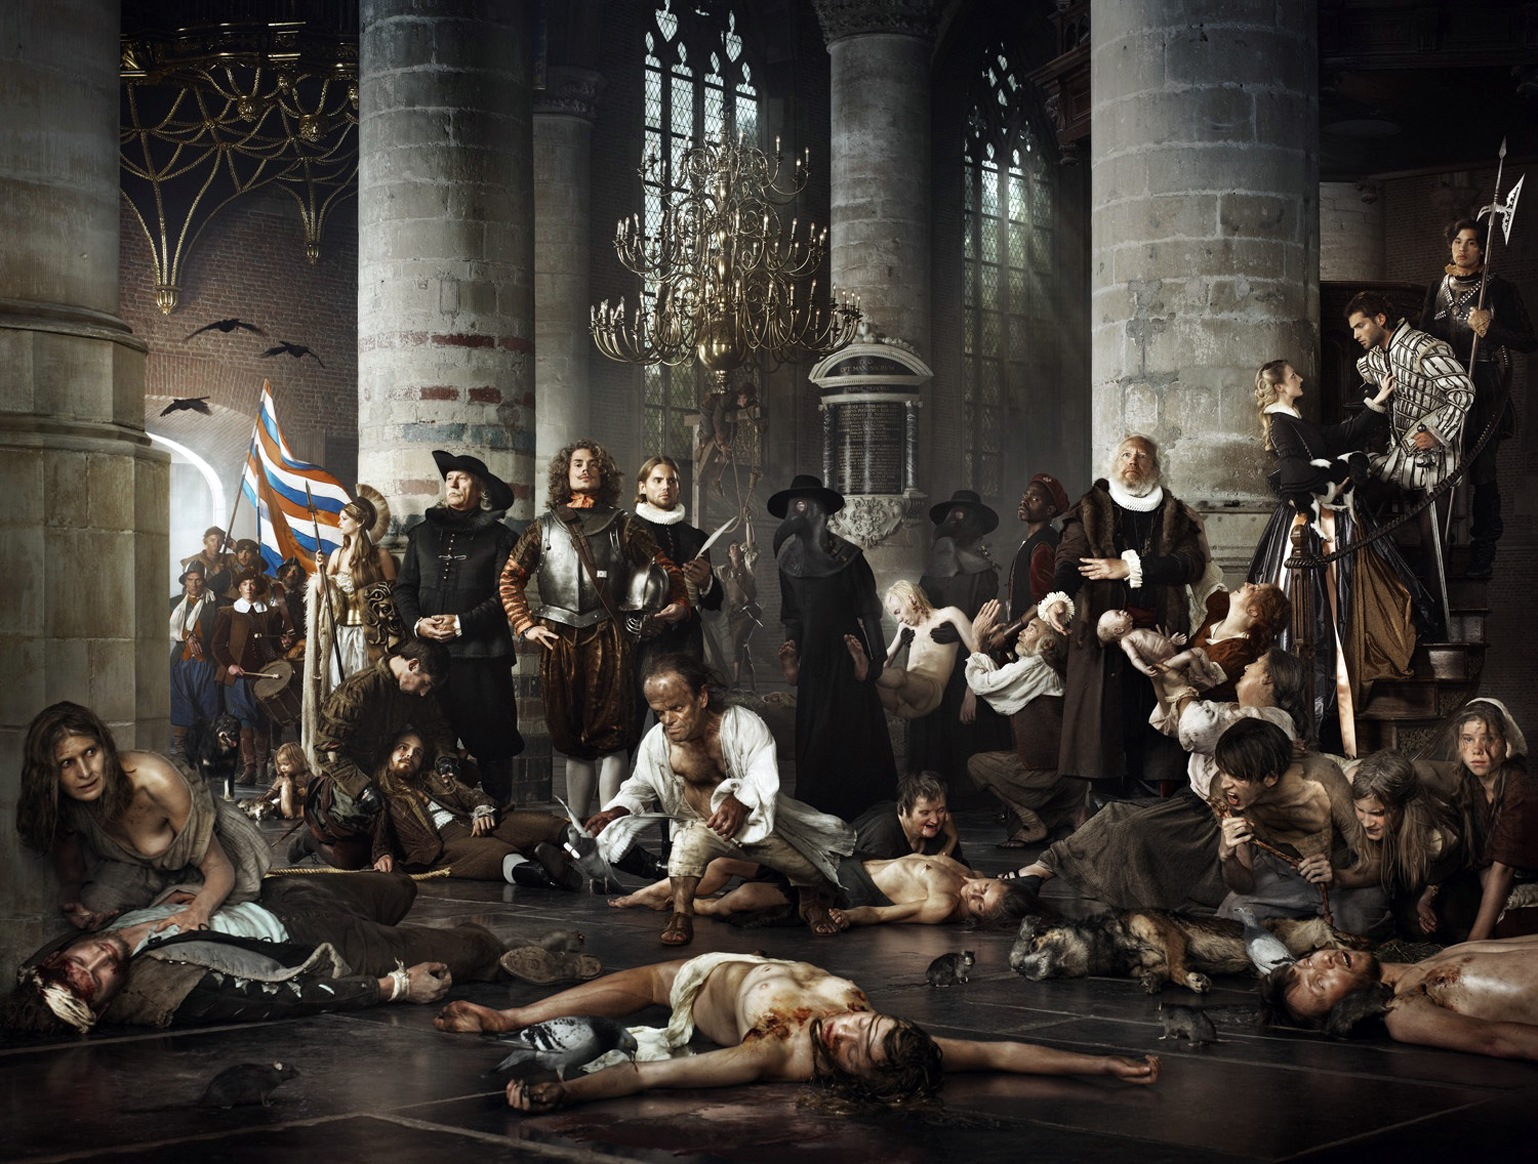 [Erwin_Olaf_the-siege-of-leiden_1%255B6%255D.jpg]